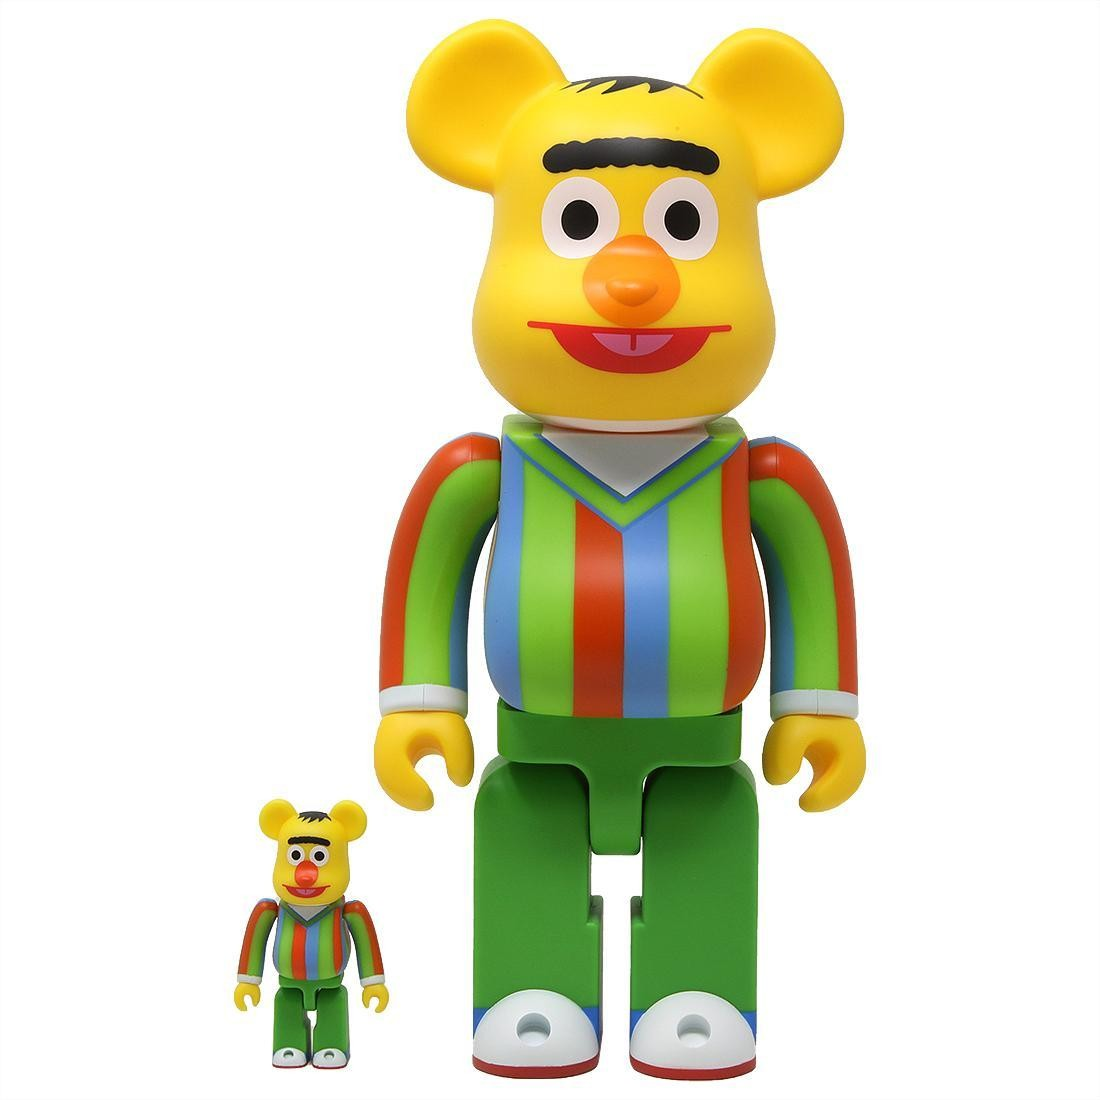 Medicom Sesame Street Bert 100% 400% Bearbrick Figure Set (yellow)